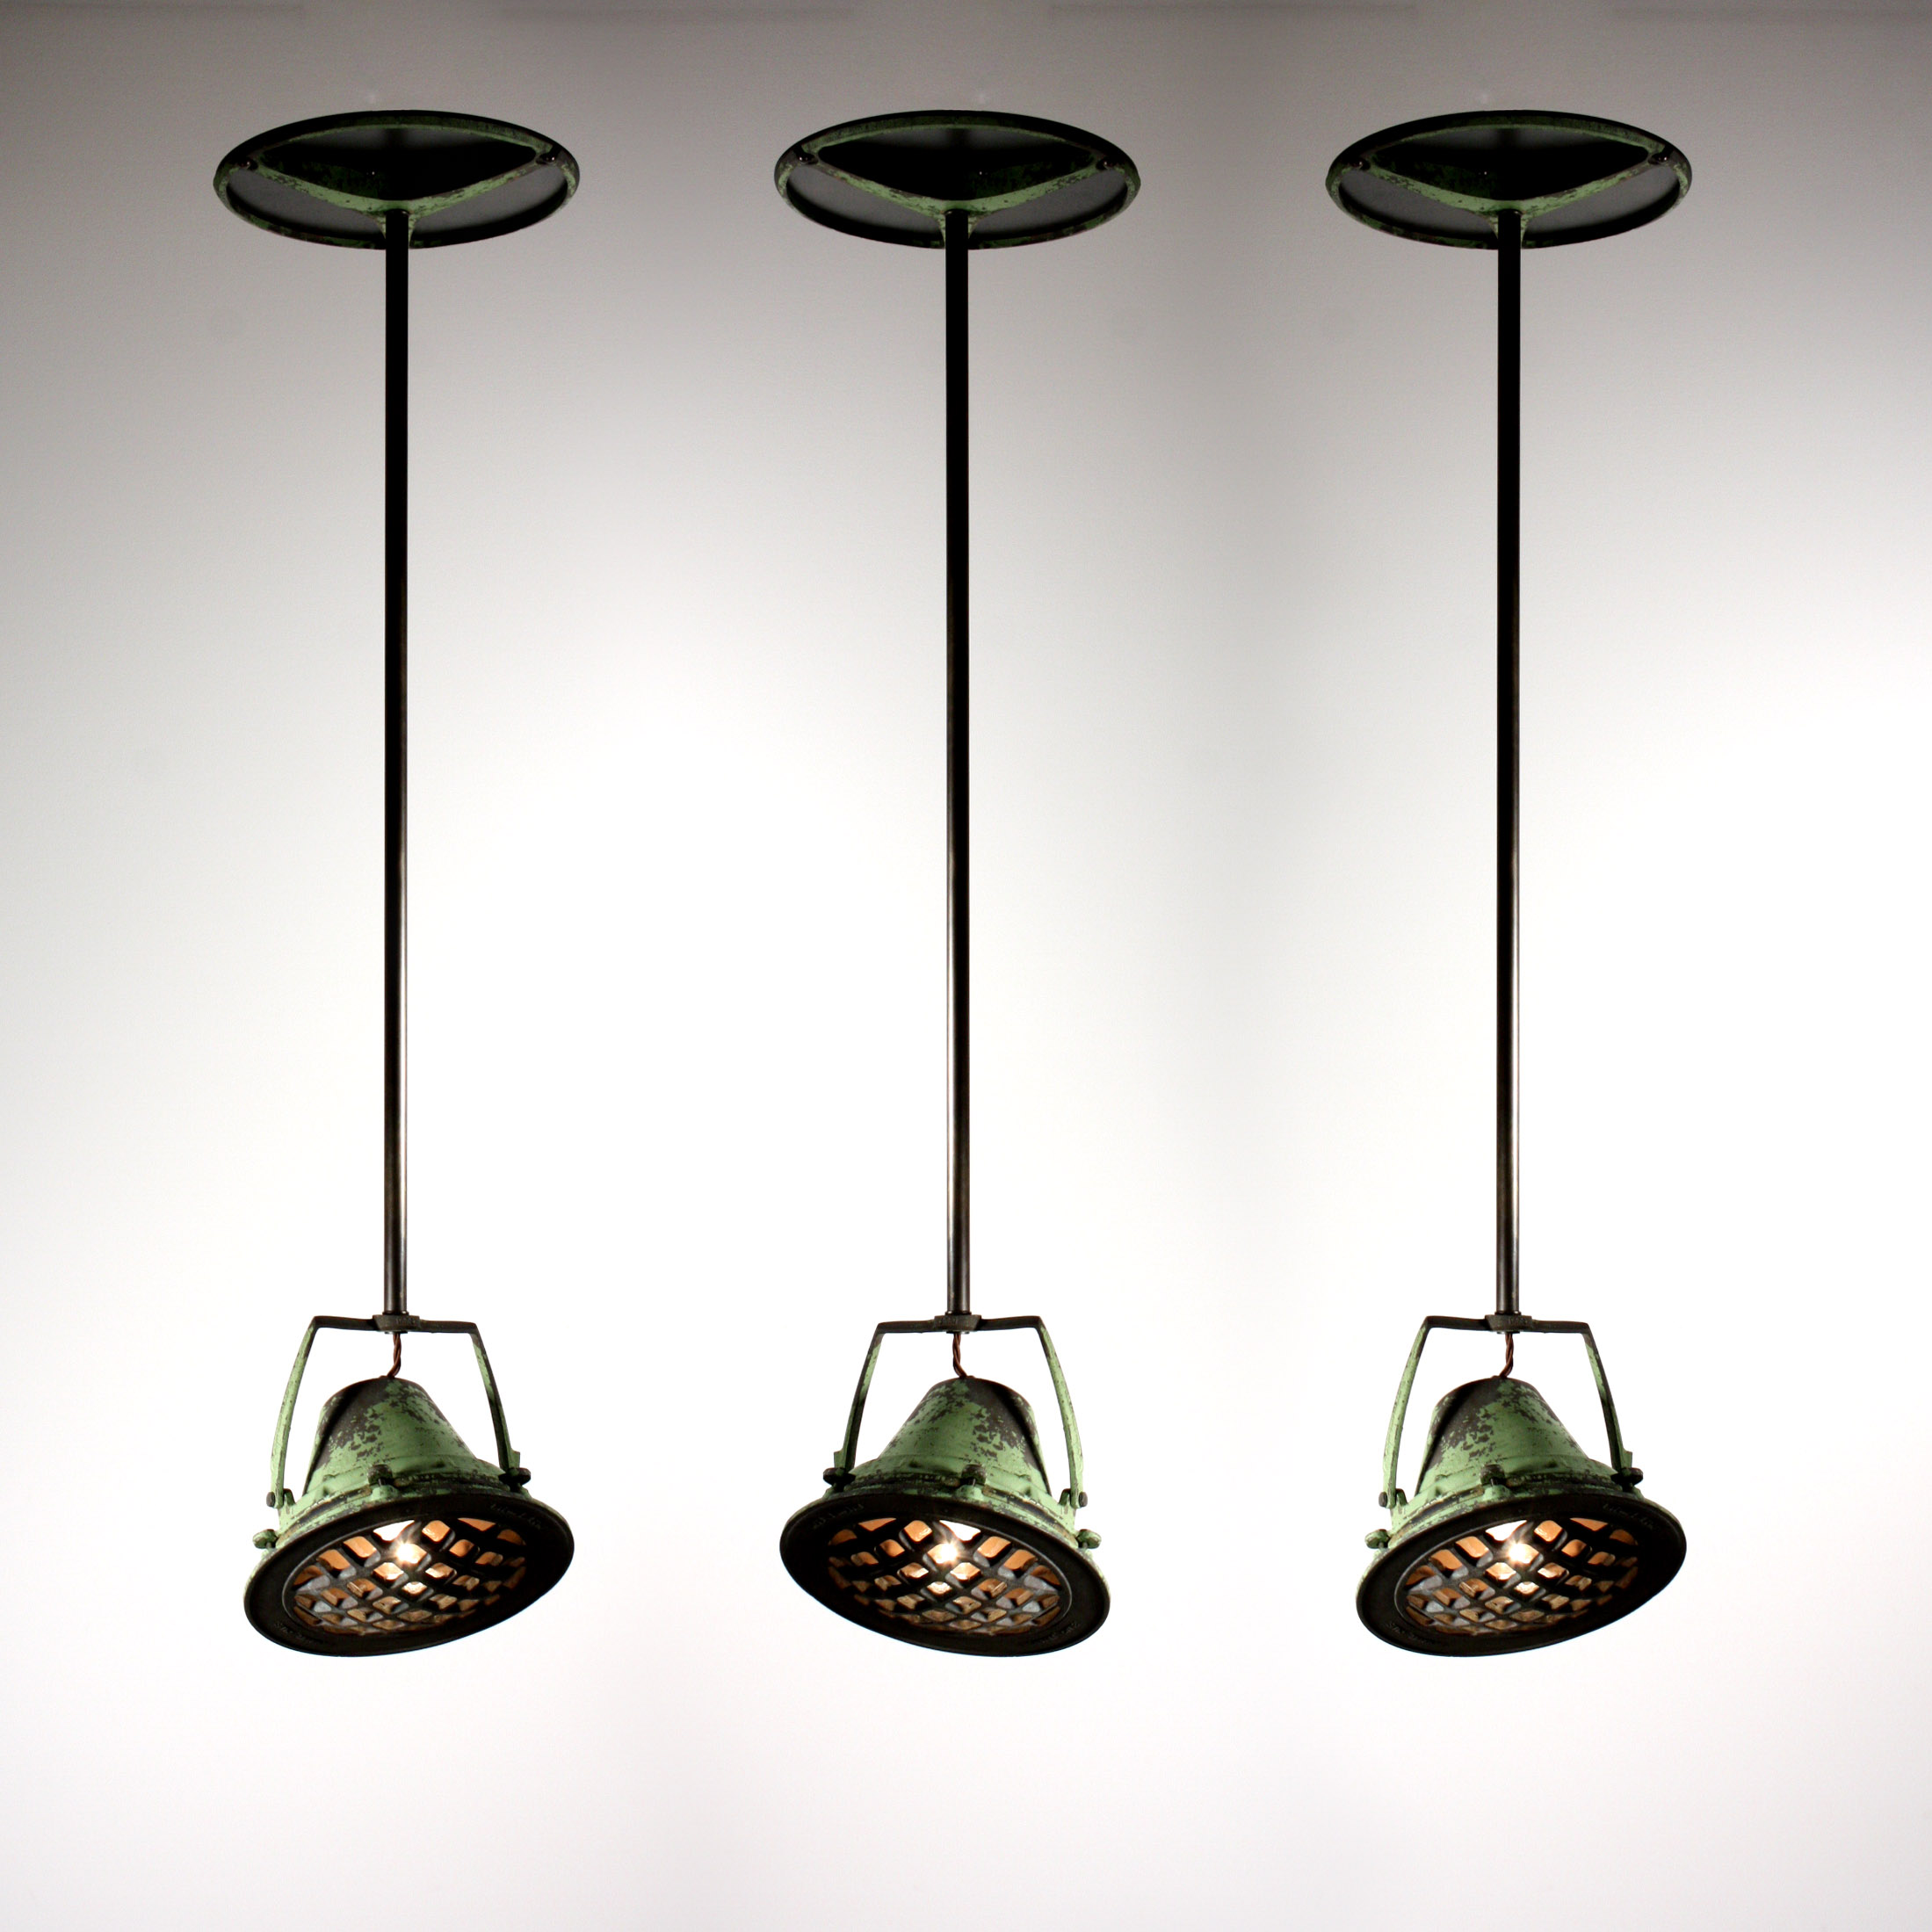 Industrial Vintage Lighting Three Matching Antique Industrial Pendant Lights From